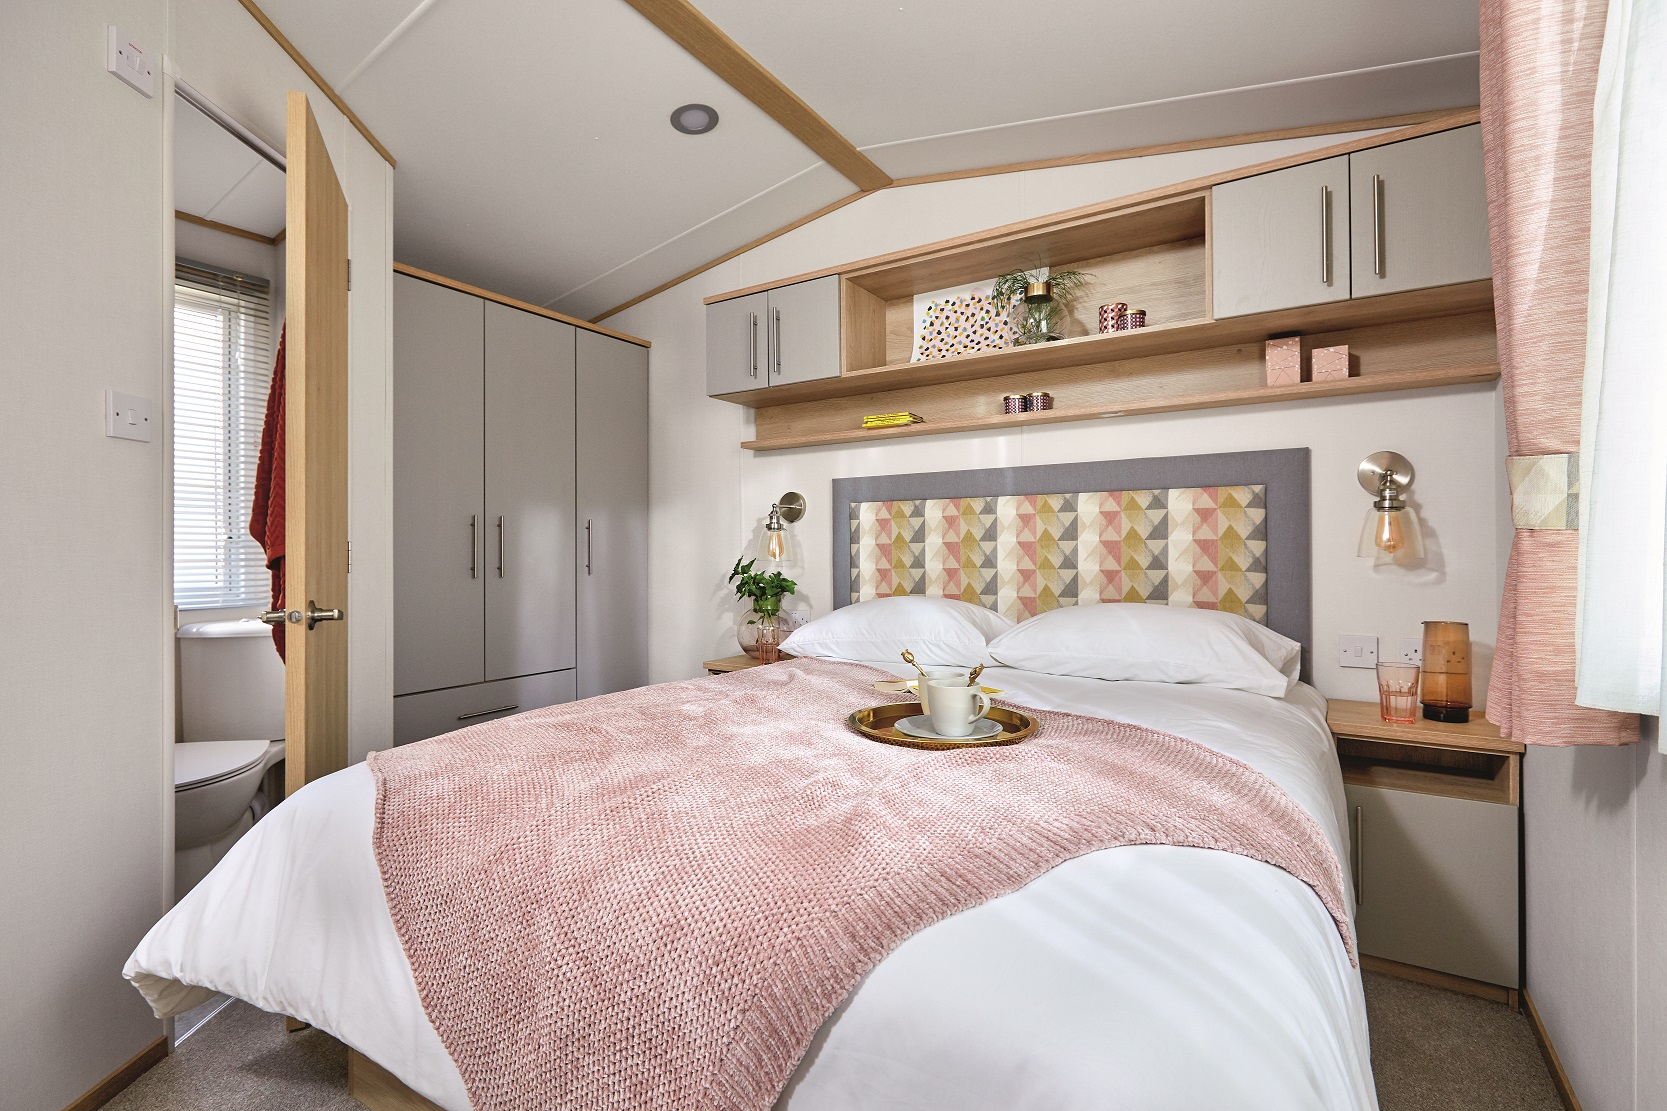 ABI Beverley: New Static Caravans and Holiday Homes for Sale, Langley Moor, Durham Large Image 3